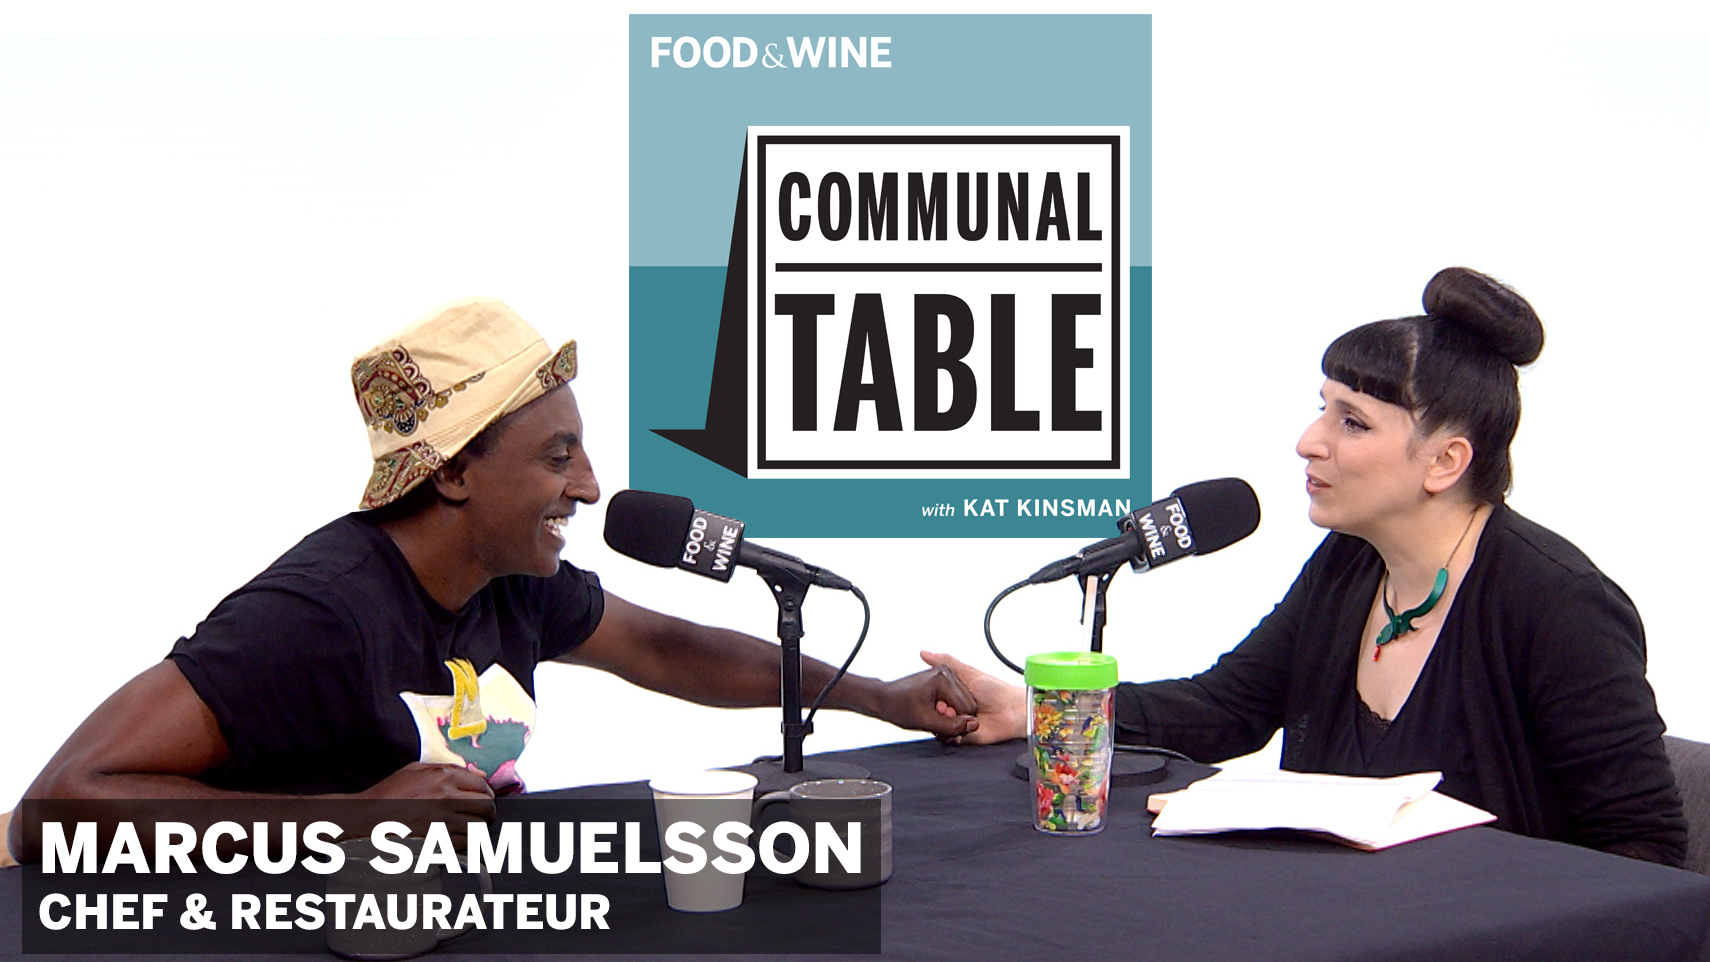 communal-table-marcus-samuelsson-FT-blog061919.jpg